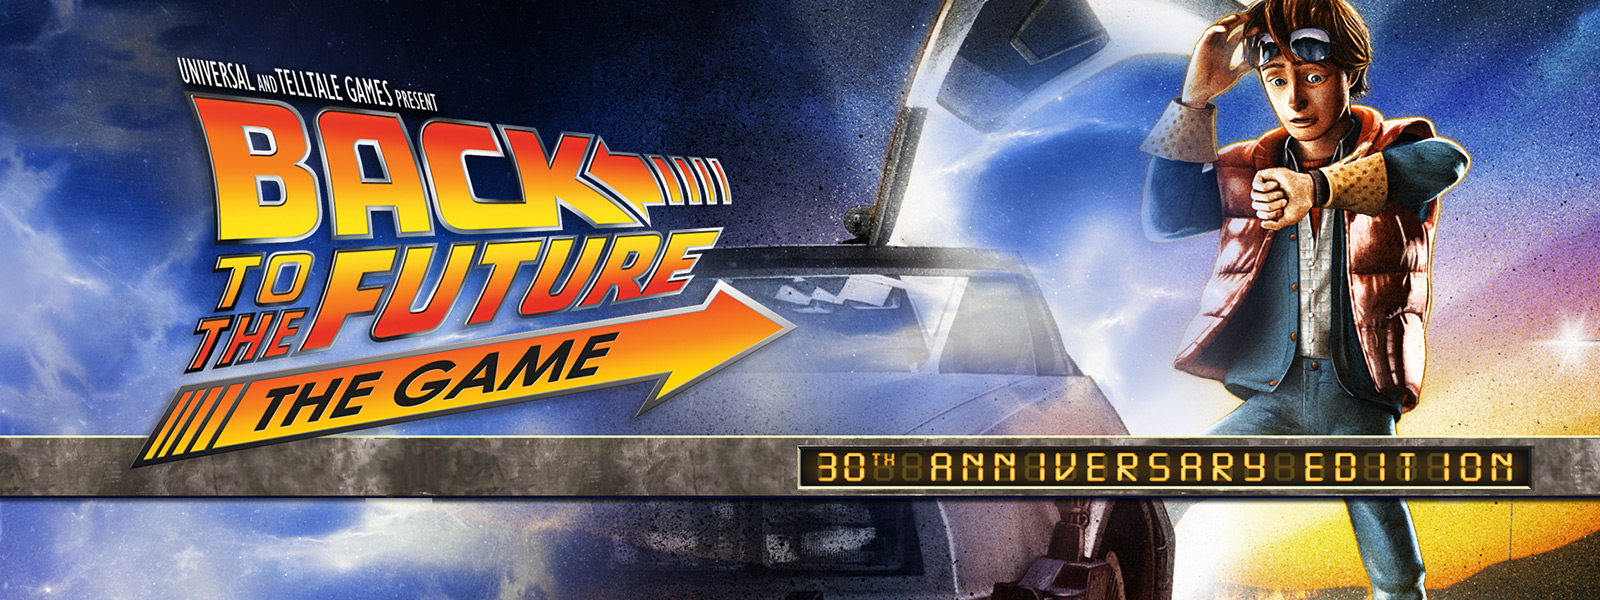 Marty McFly from Back to the future with a delorean